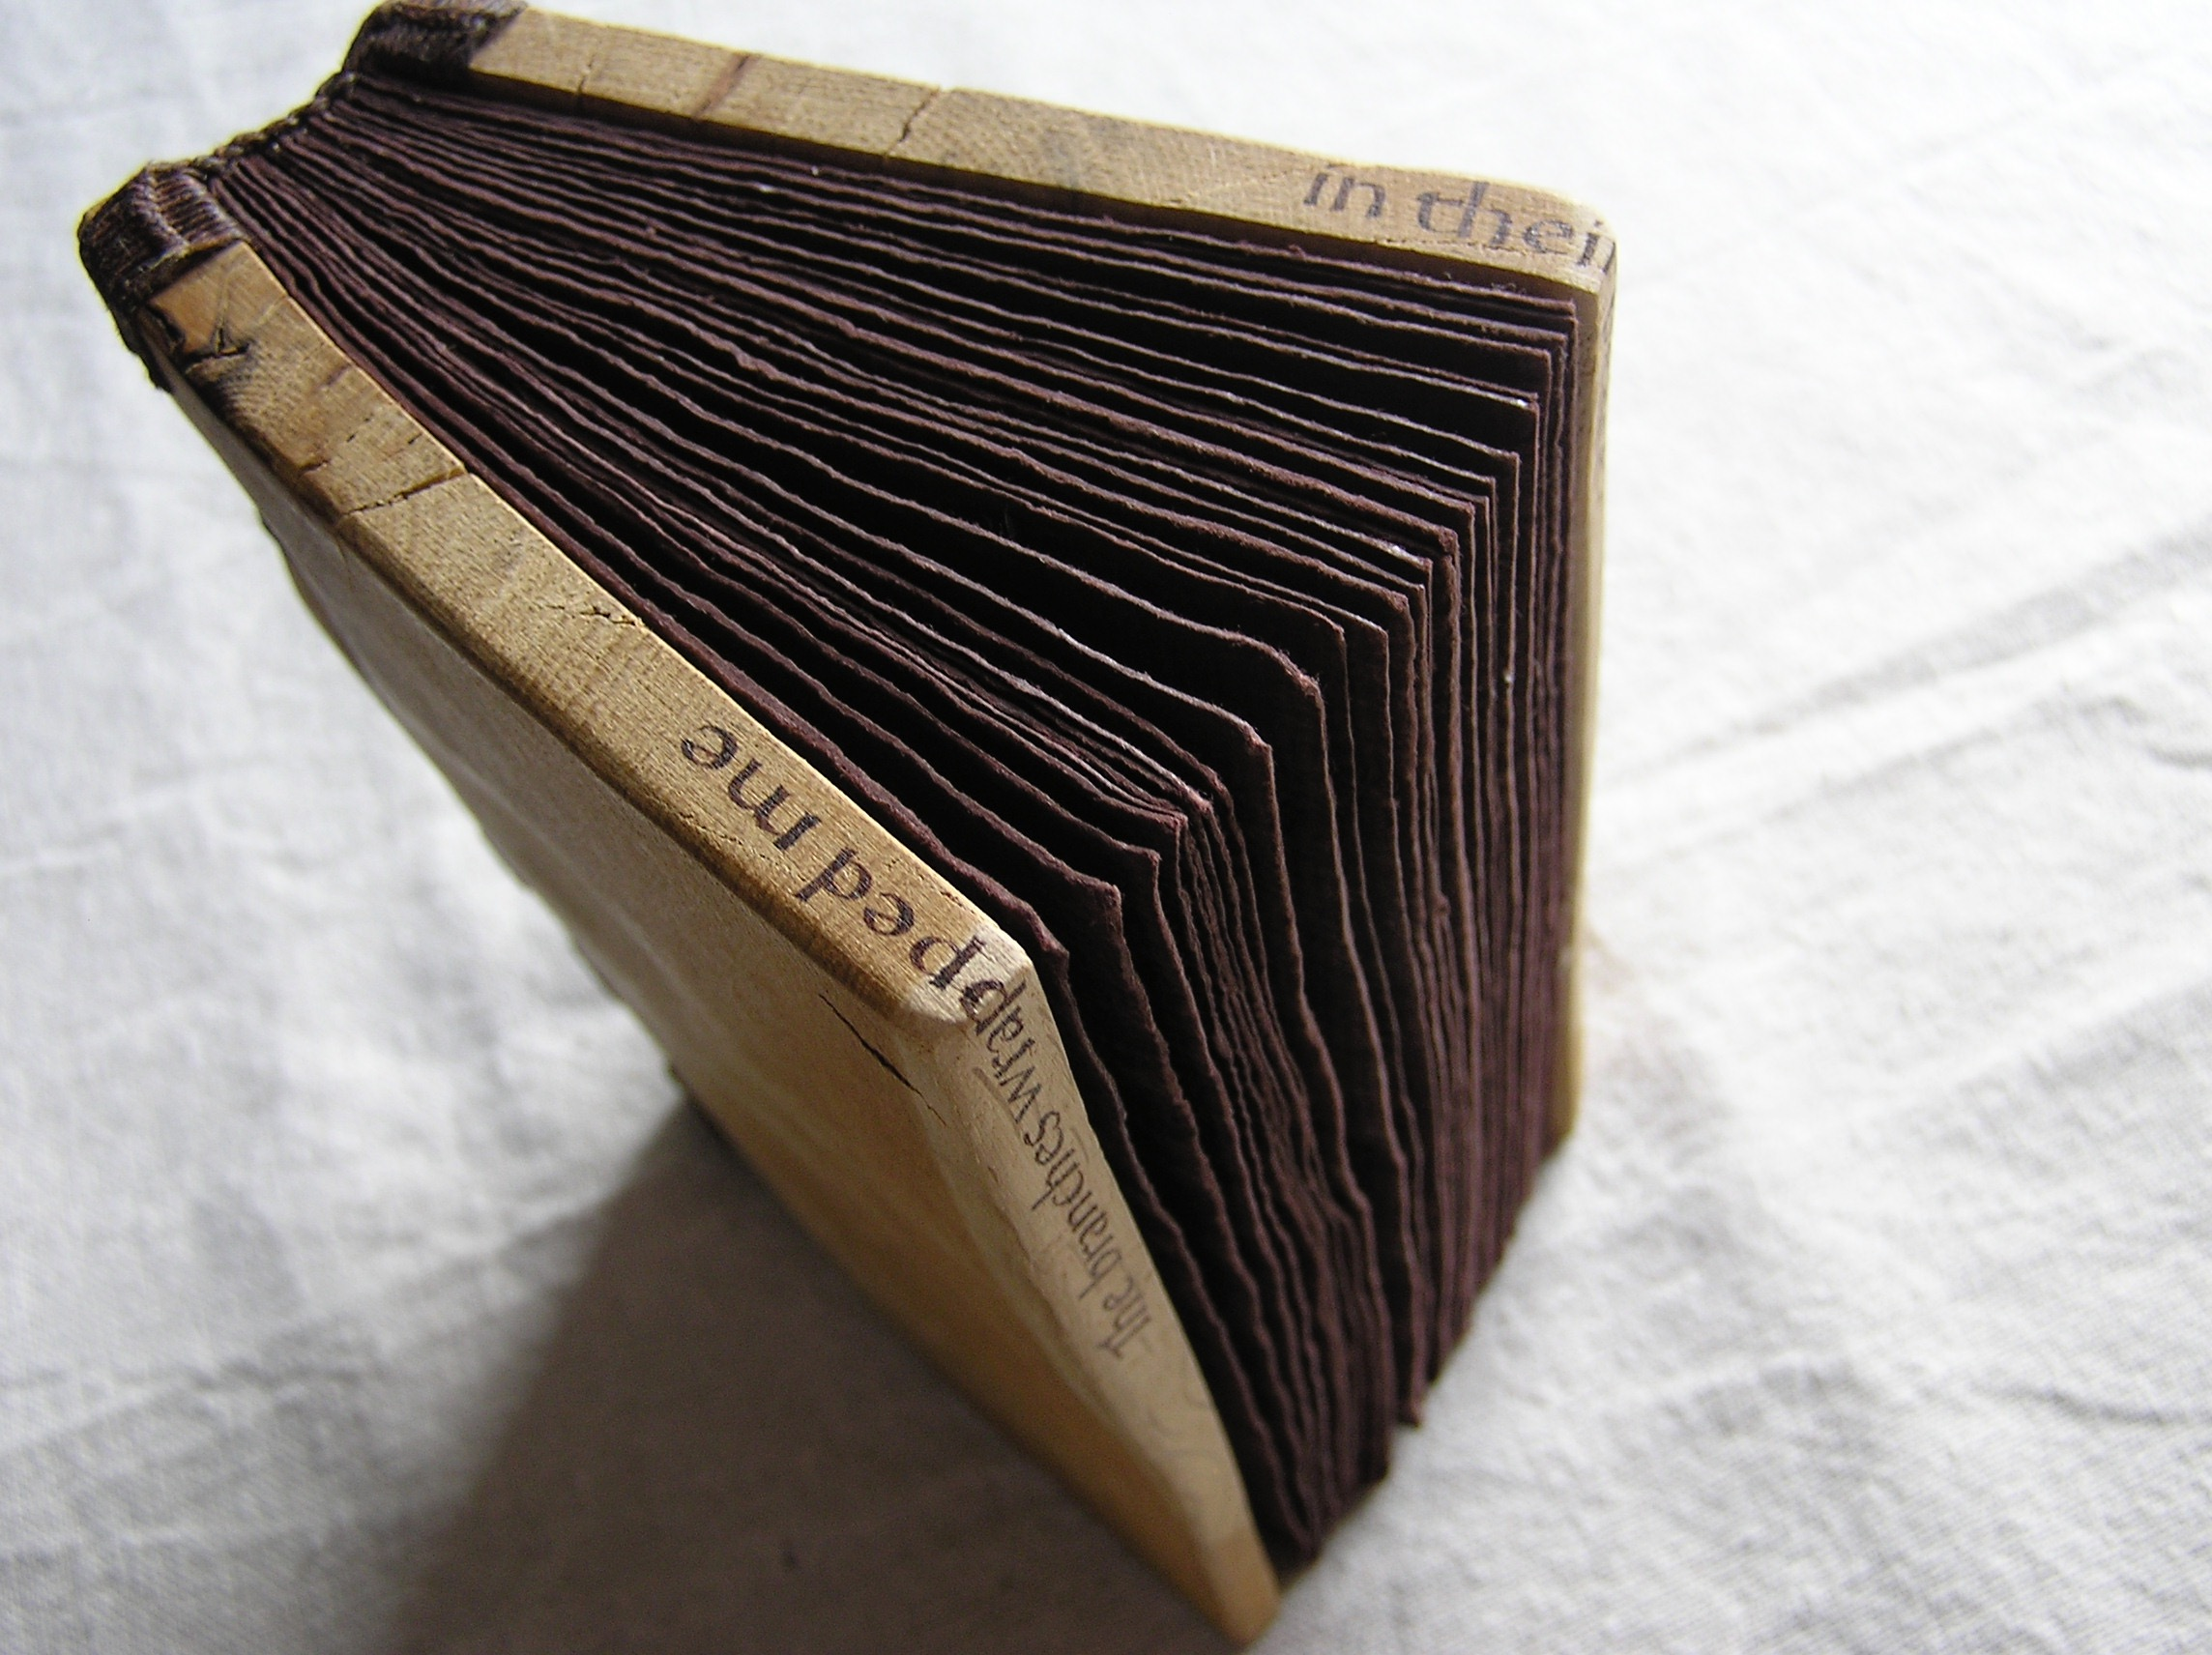 Small handmade book of letters painted onto rag paper and bound in wooden boards.